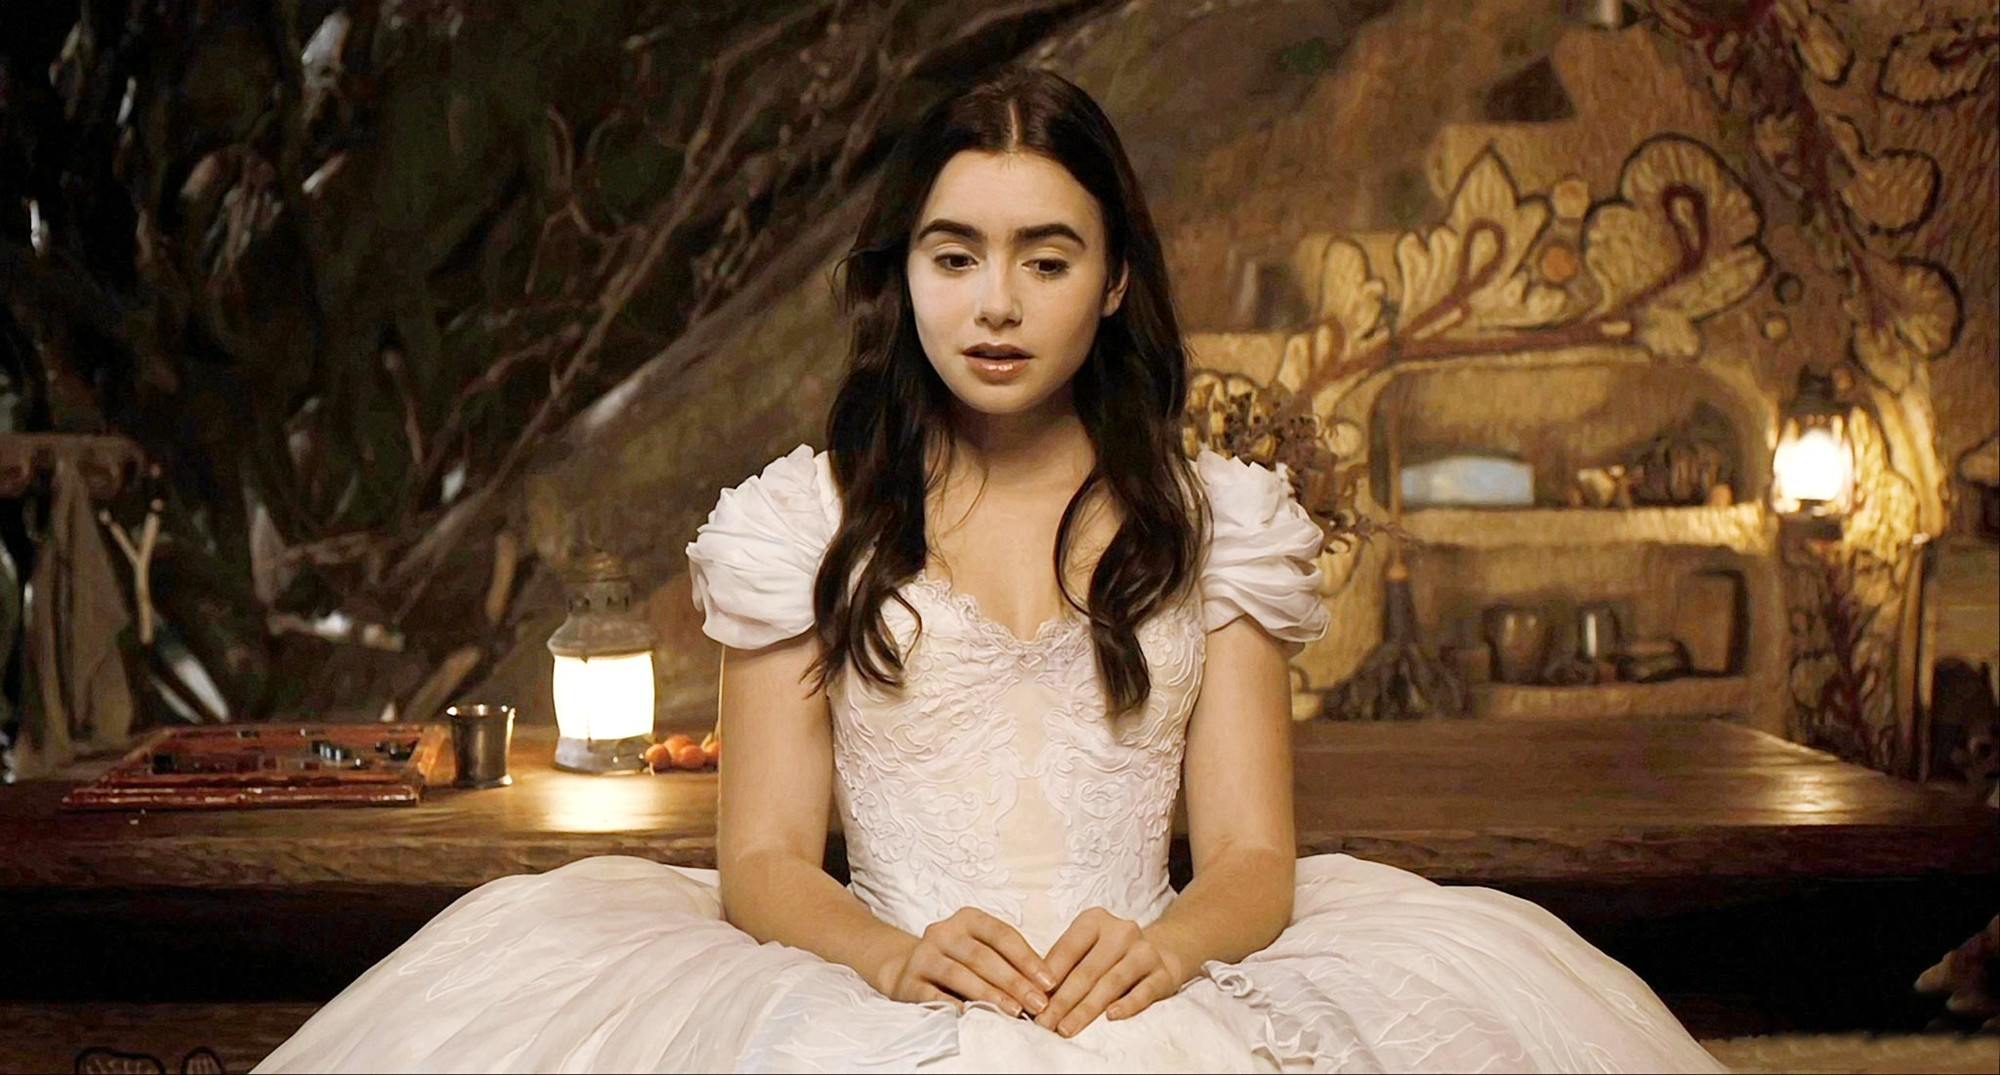 Lily collins thought she fell victim to prank when offered for Blanche neige miroir miroir film